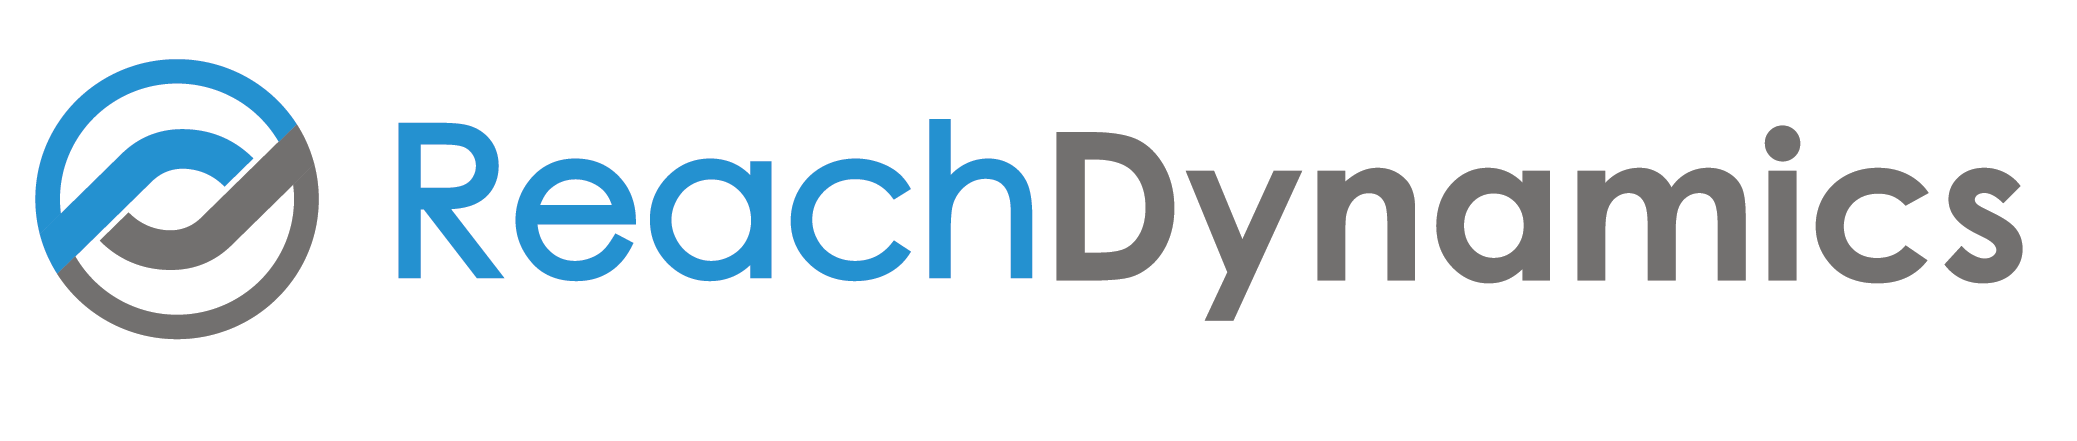 reachdynamics logo transparent.png